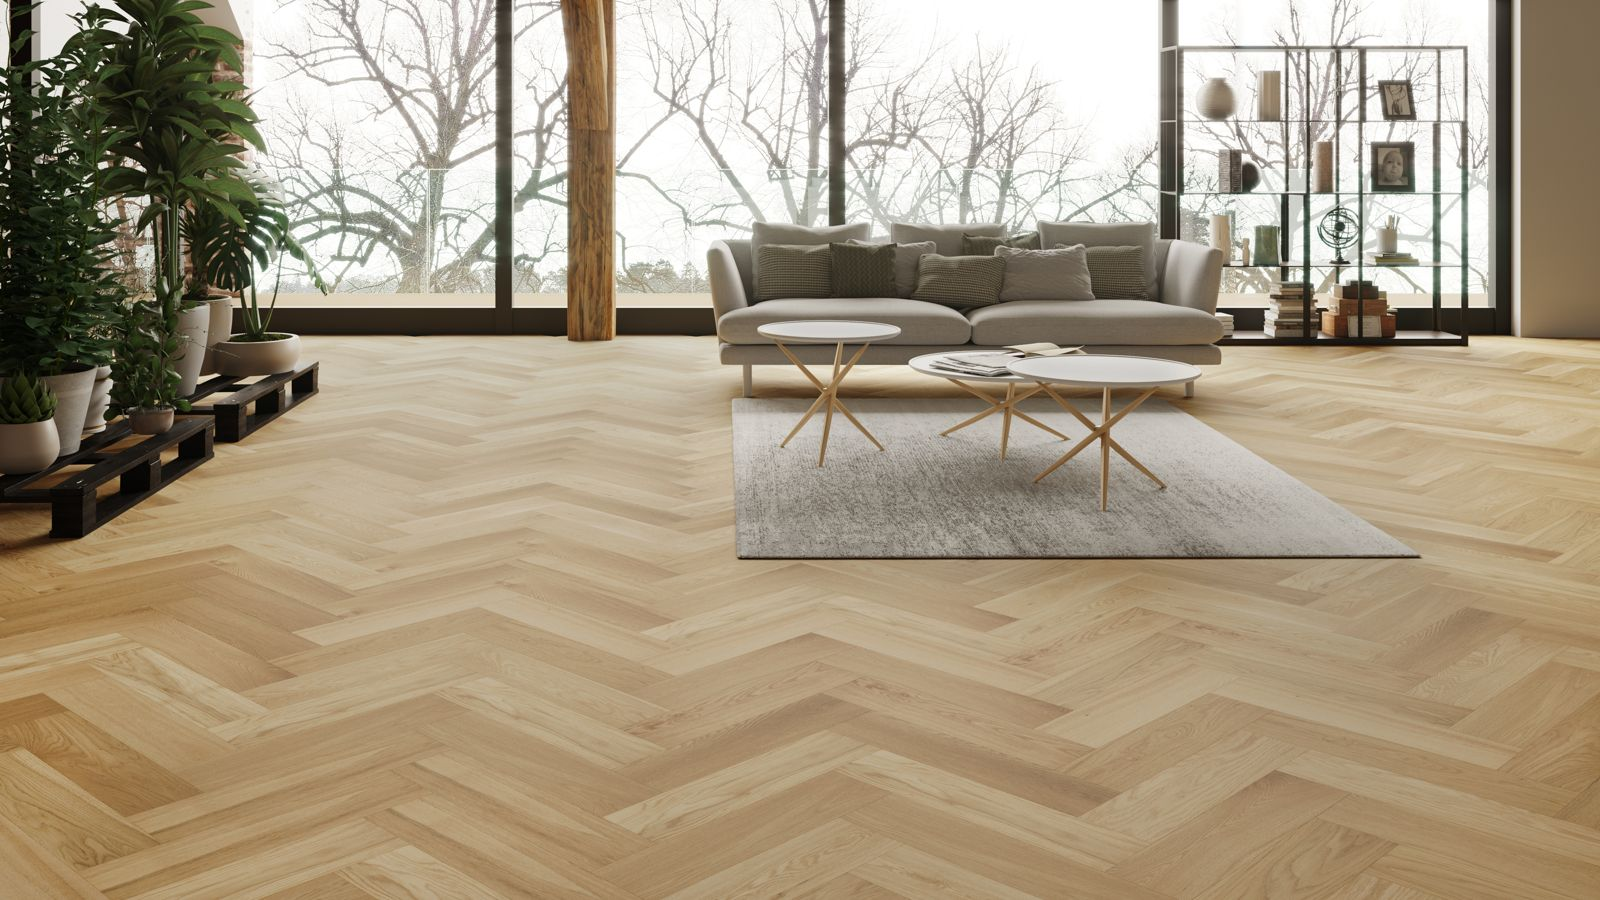 Parquet Flooring | Parquet | Flooringsupplies.co.uk